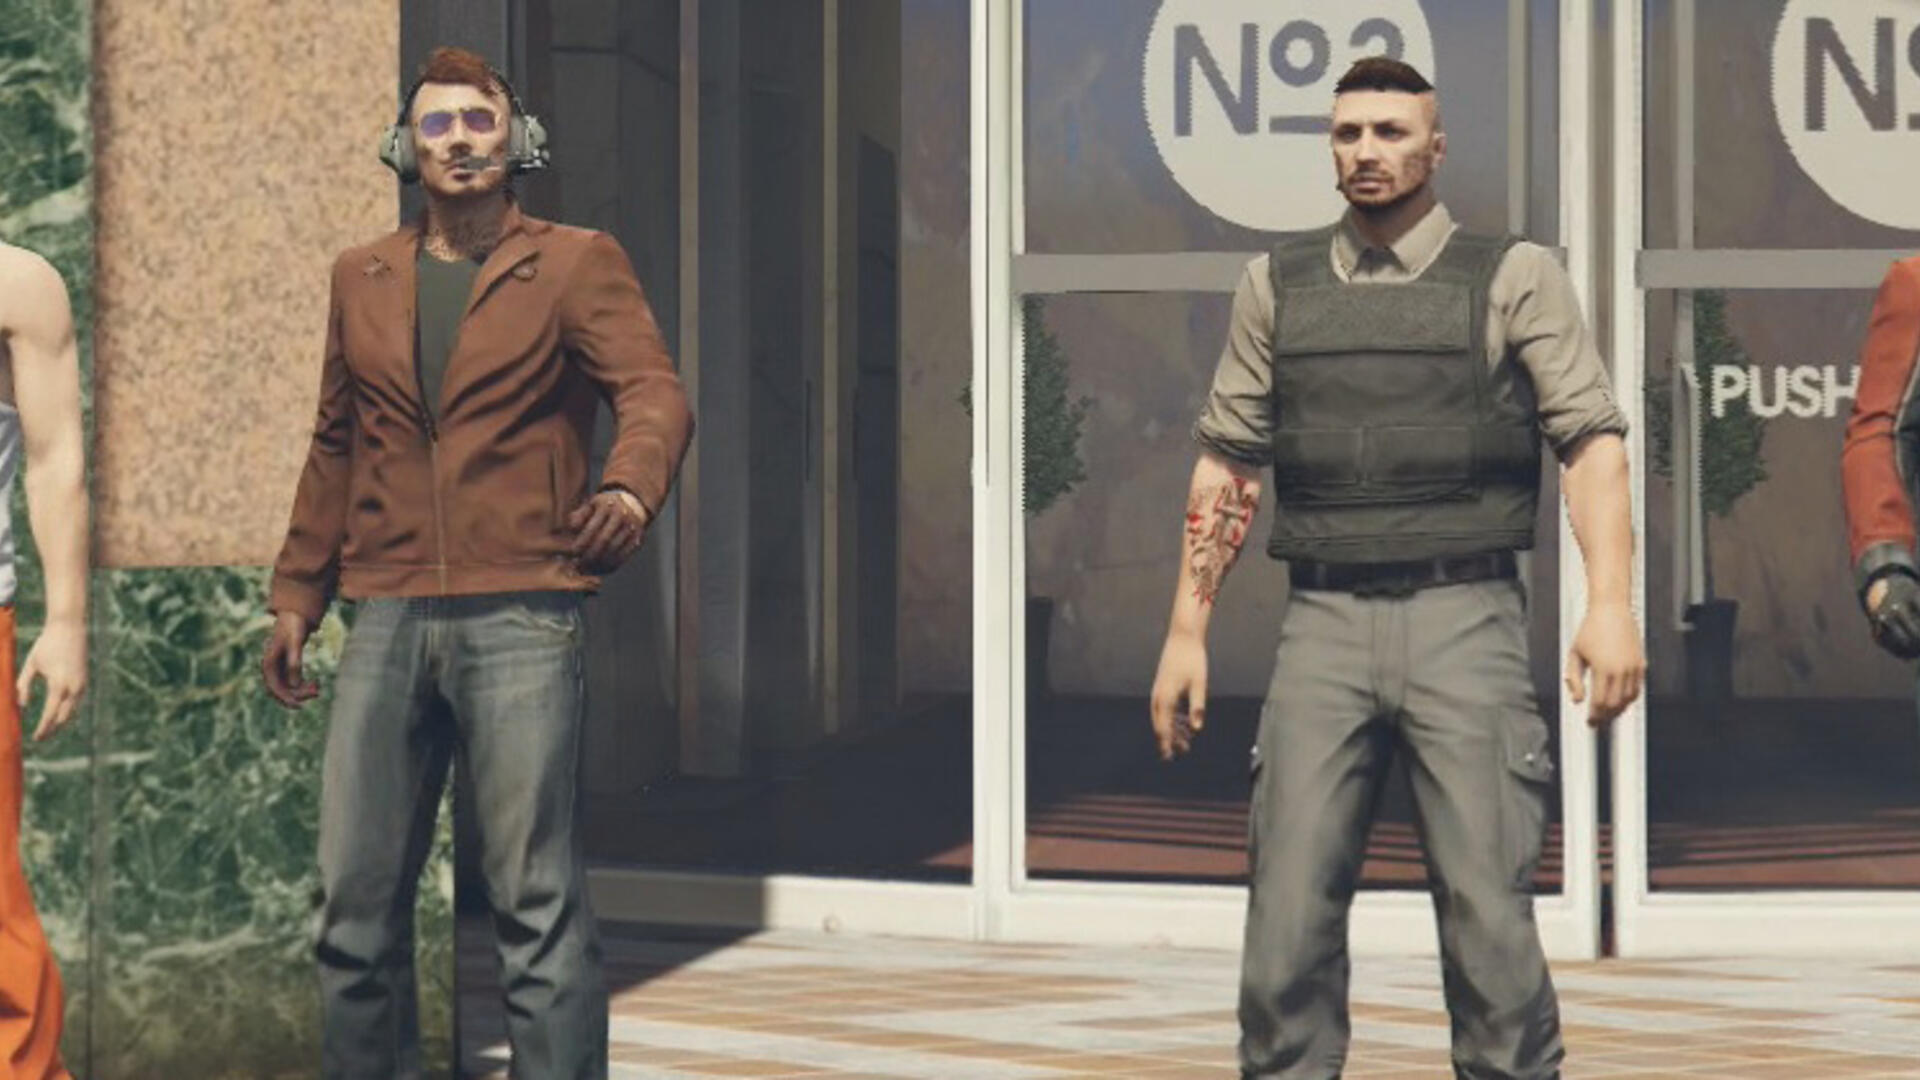 gta v online first heist guide